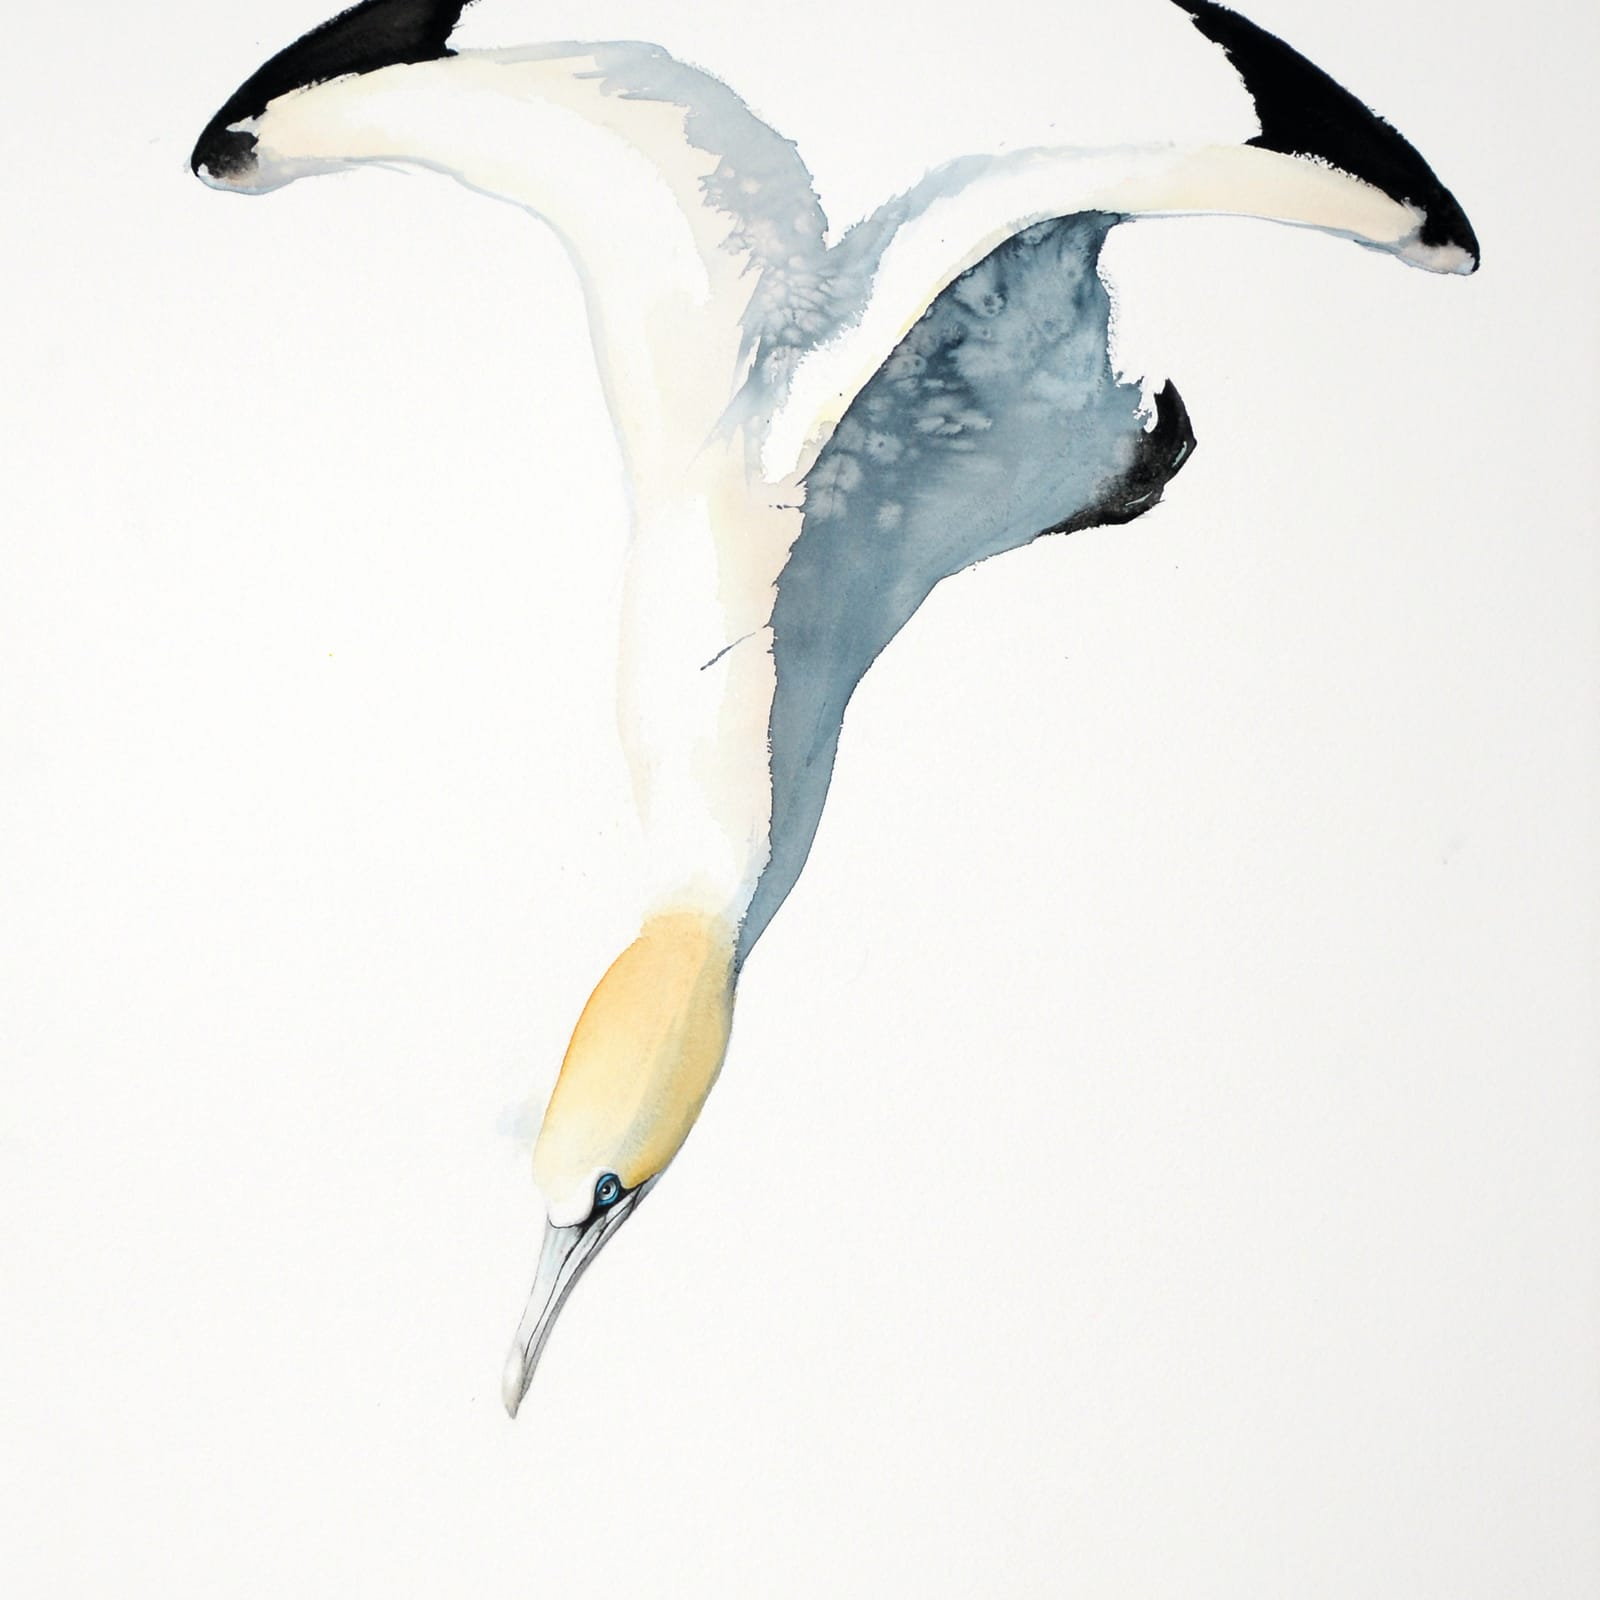 Karl Martens  GANNET 4 (UNFRAMED)  Watercolour  100 x 70 cm  39 3/8 x 27 1/2 in